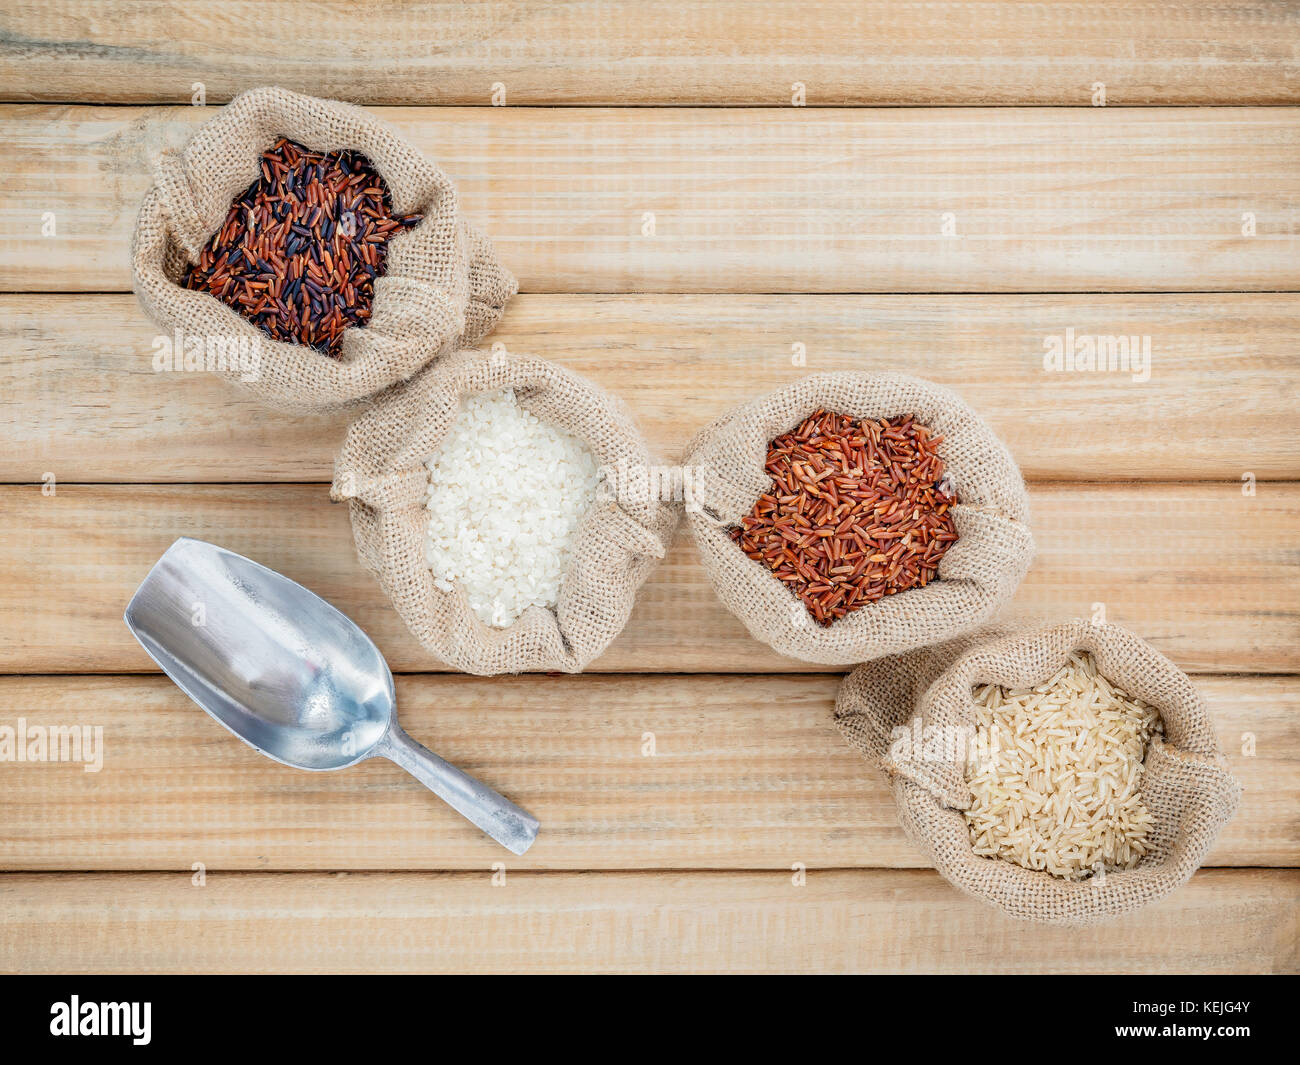 Mixed whole grain traditional thai rices best rices for healthy and super food in hemp sacks bag setup on wooden - Stock Image